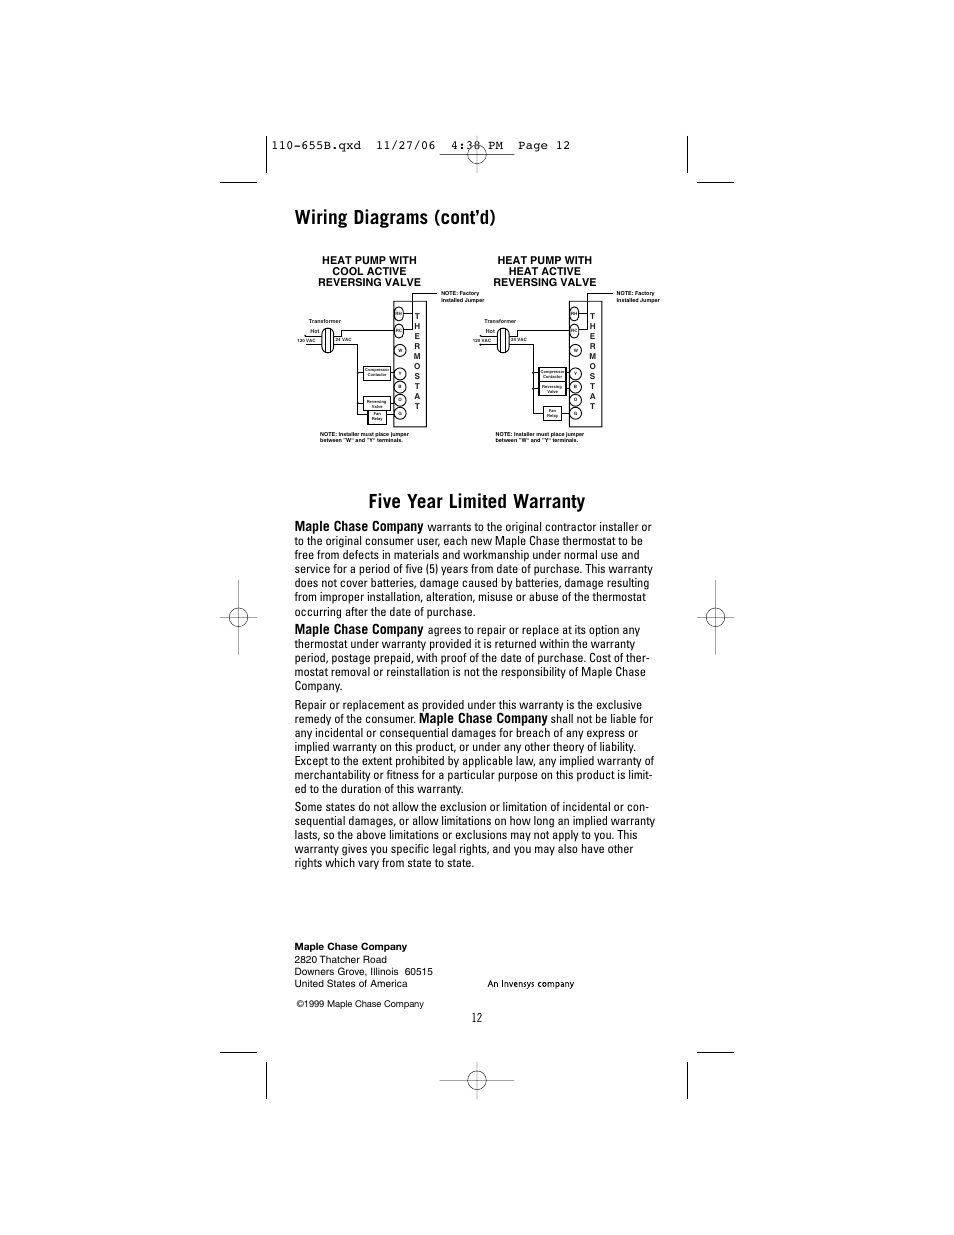 medium resolution of five year limited warranty wiring diagrams cont d maple chase company